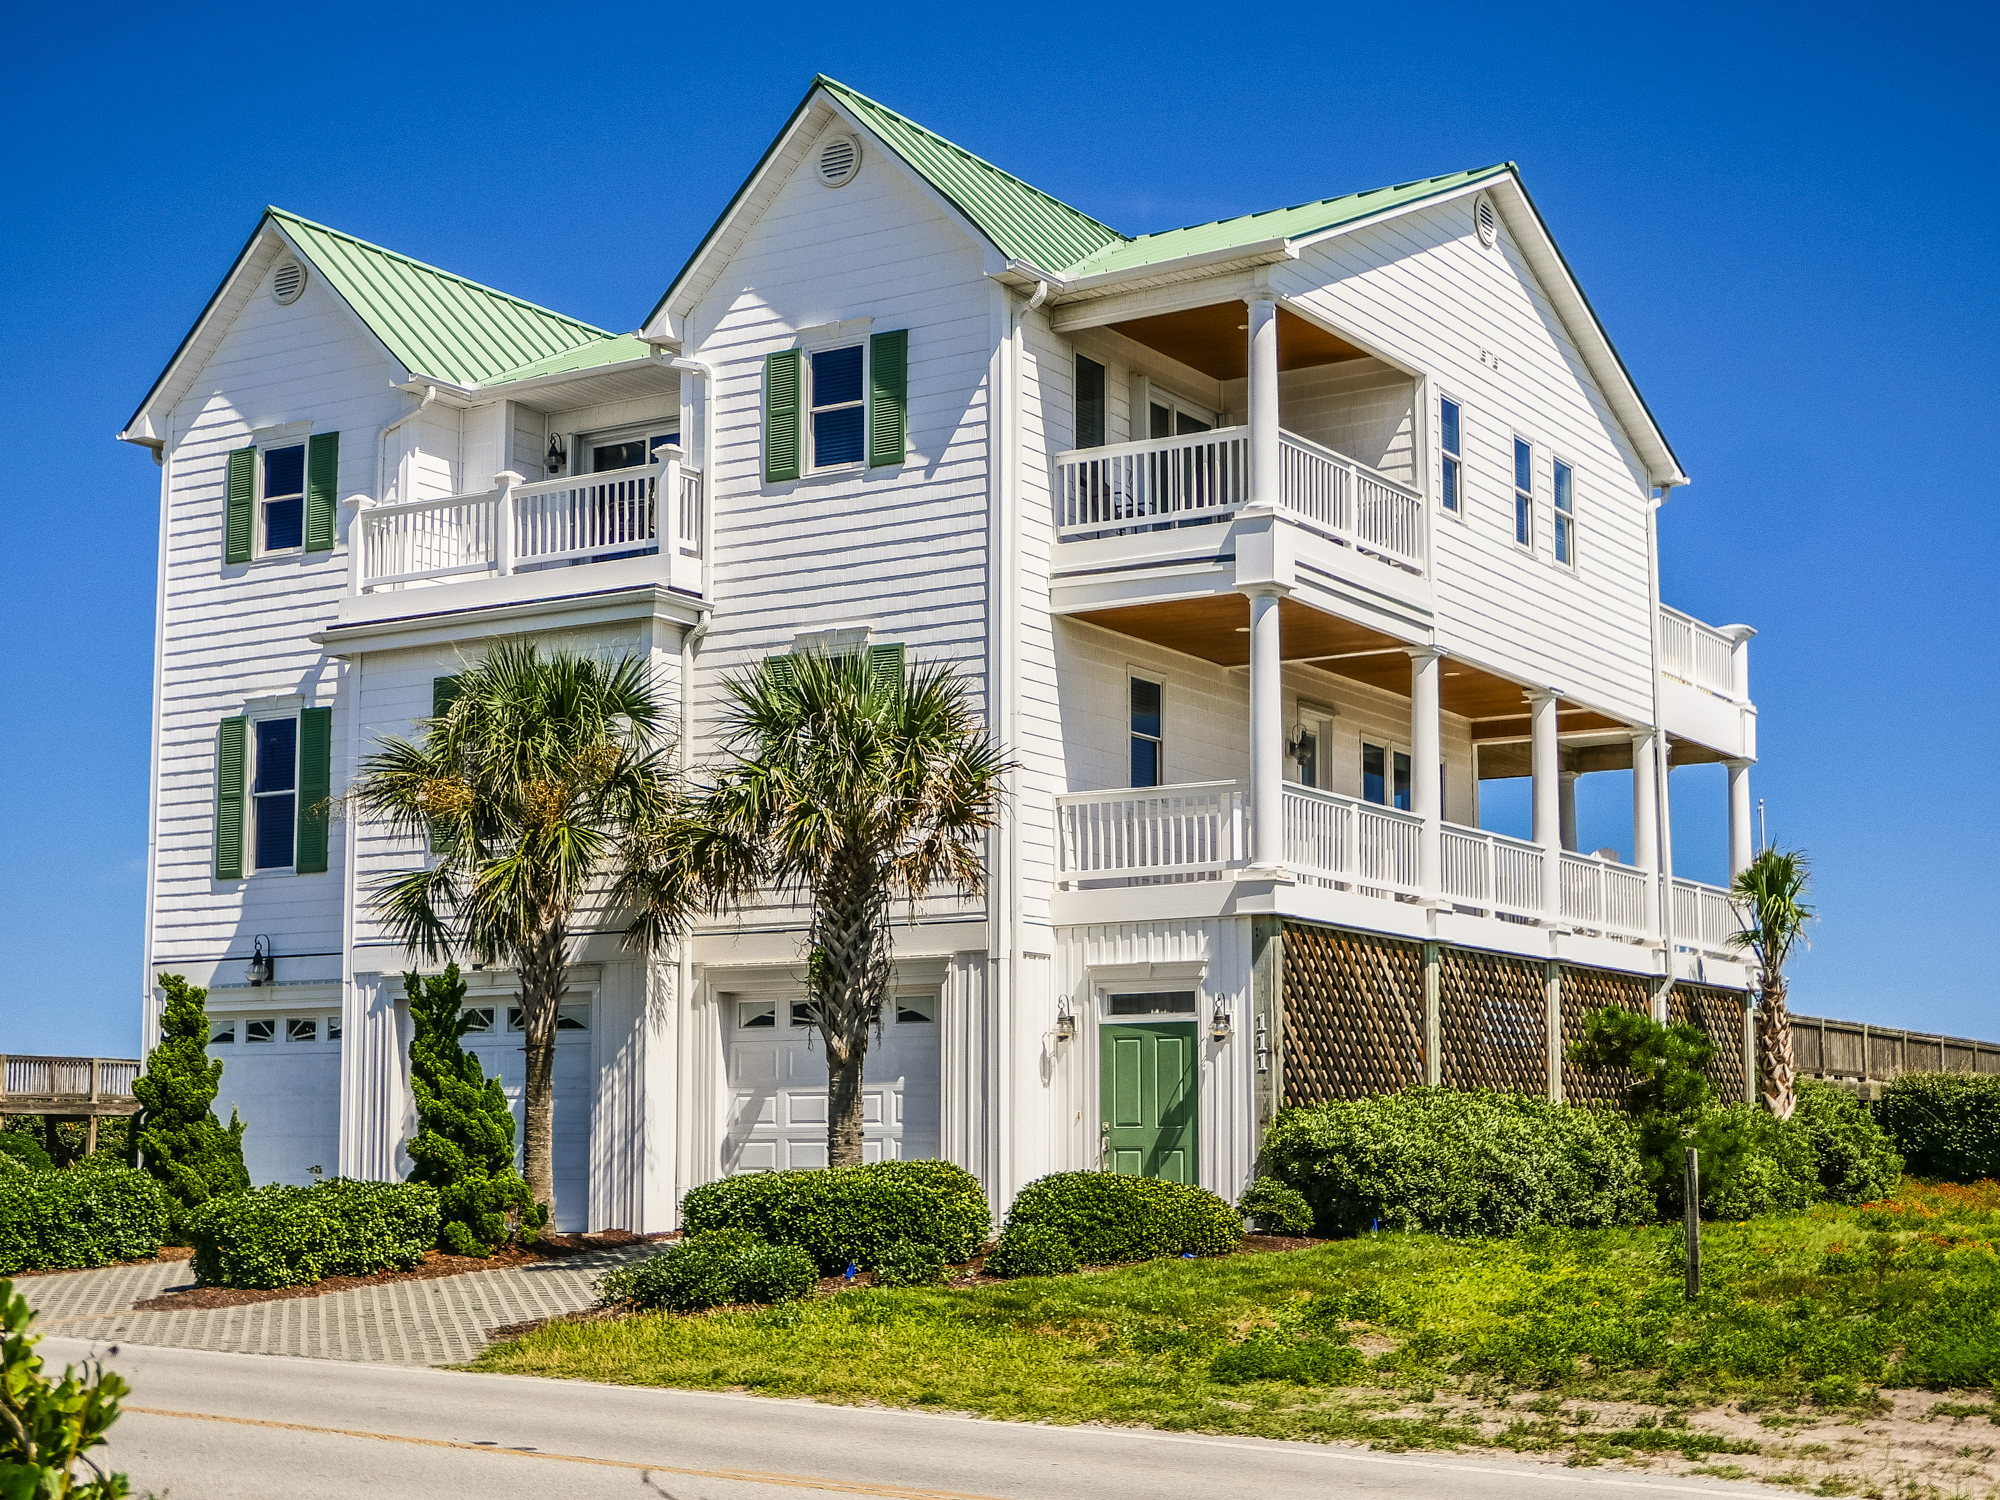 Single Family Home for Sale at Spectacular Oceanfront Home 111 South Anderson Blvd. Topsail Beach, North Carolina, 28445 United States